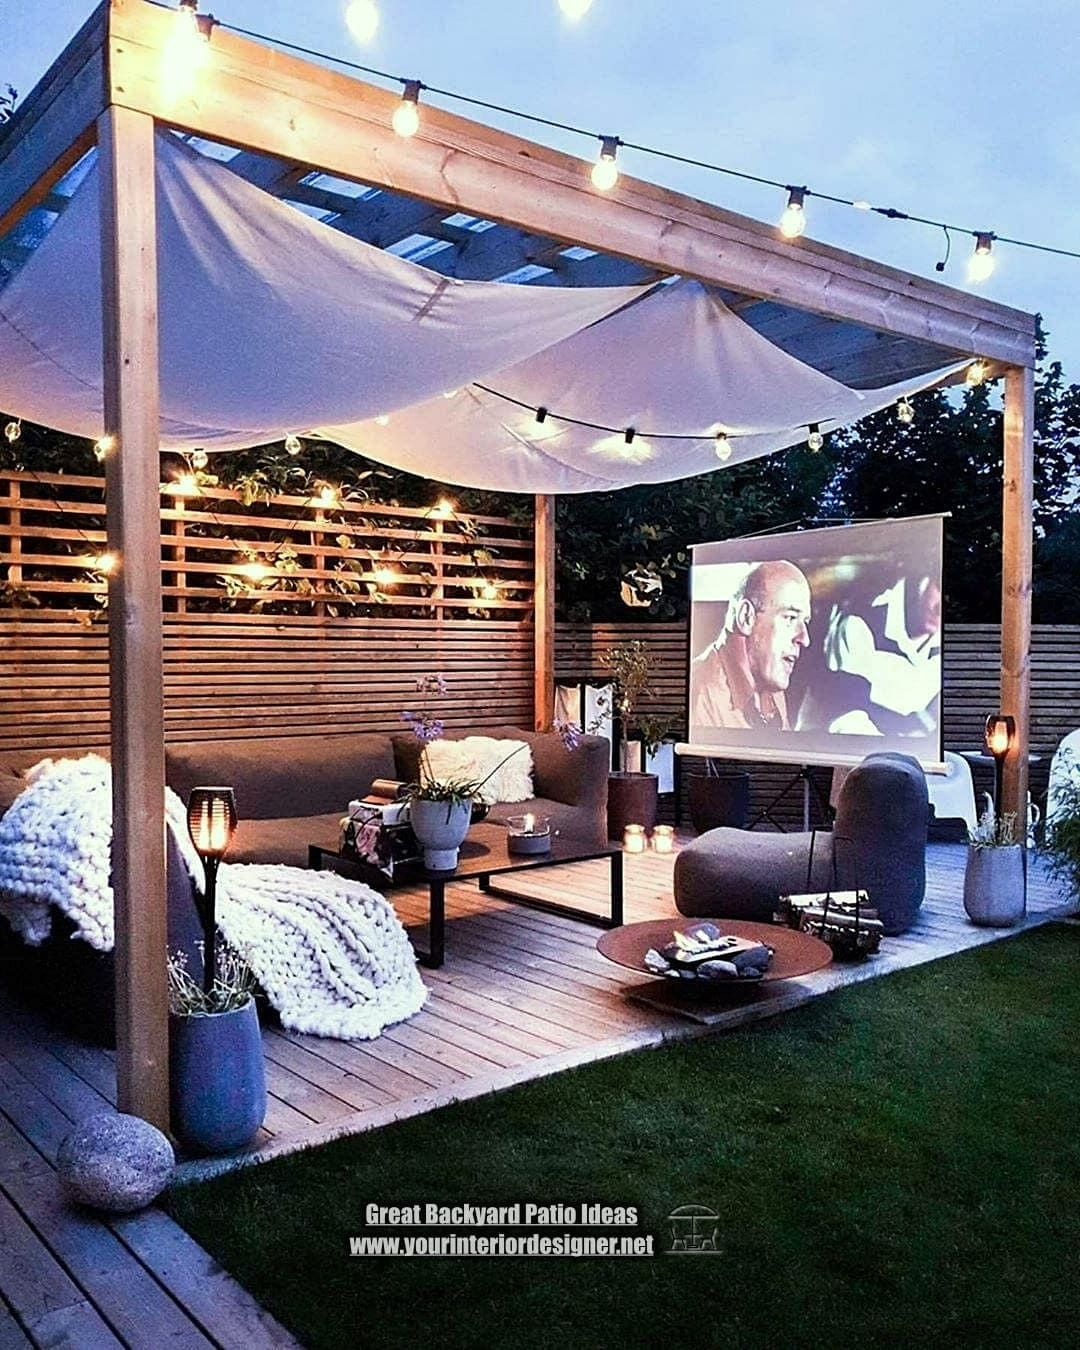 Unique Patio Ideas For Backyards Or Other Outdoor Areas Page 25 Of 44 Your Interior Designer Unique Patios Backyard Backyard Patio